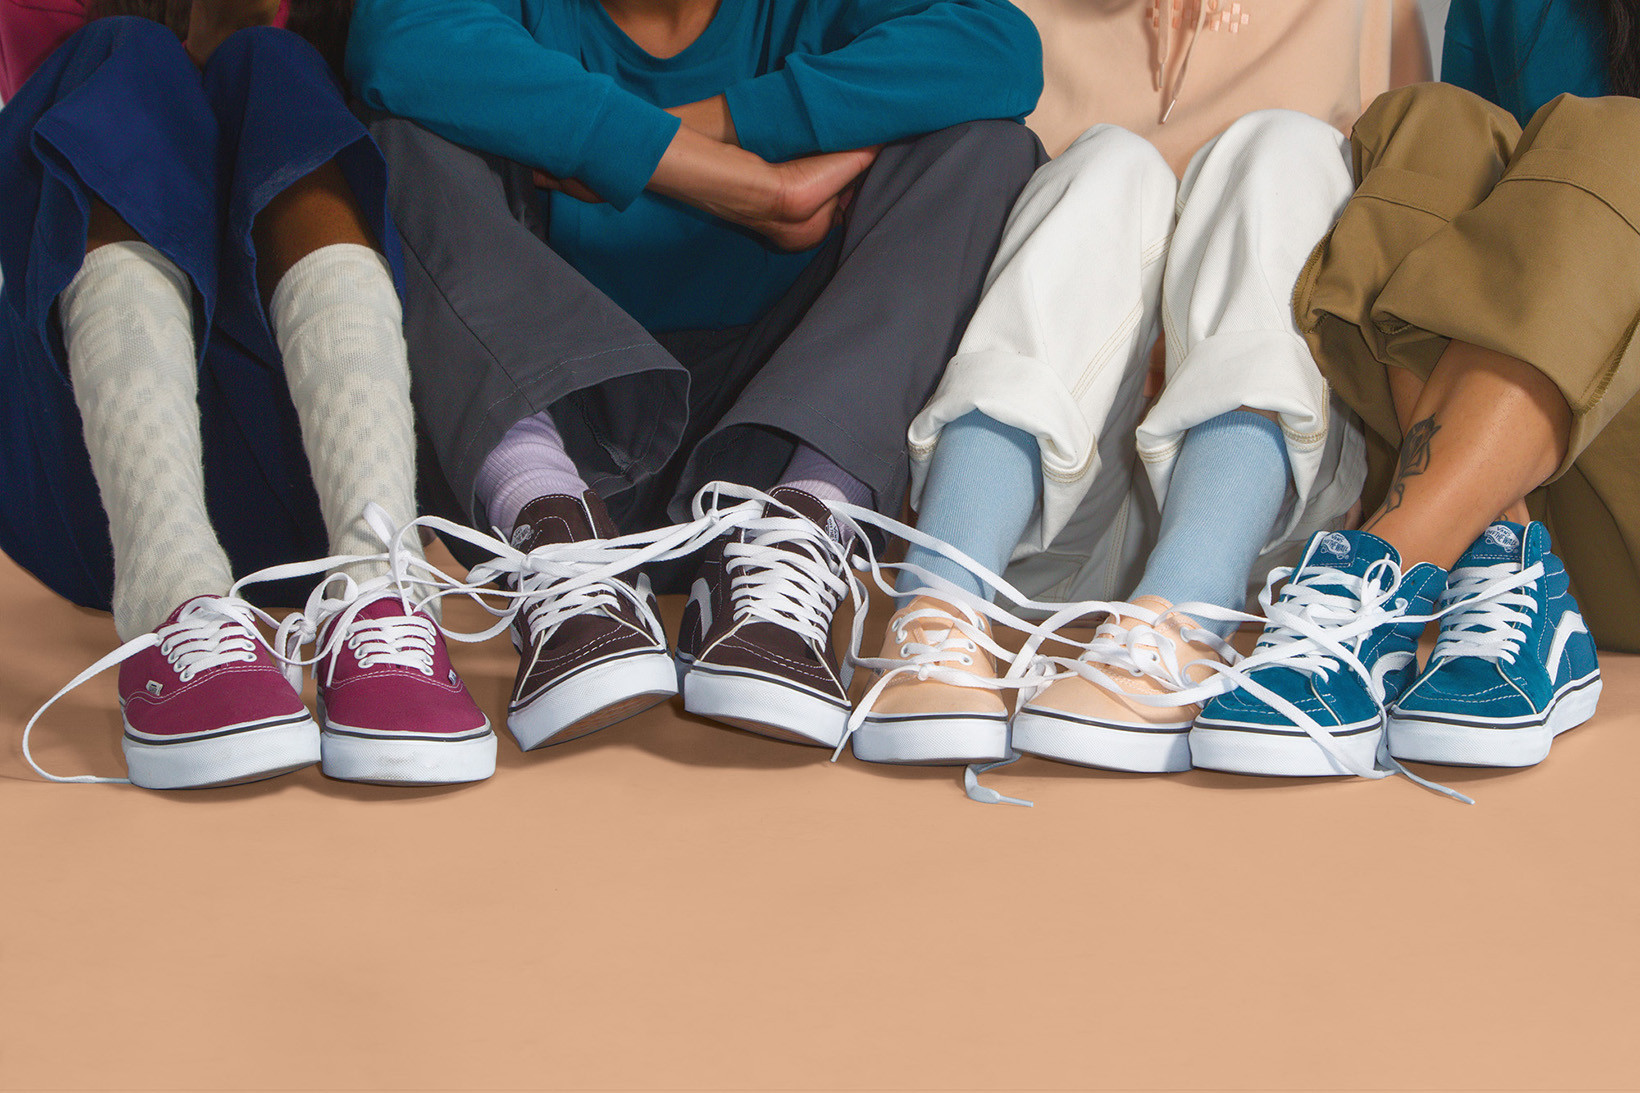 Vans Releases The New Color Therapy Collection